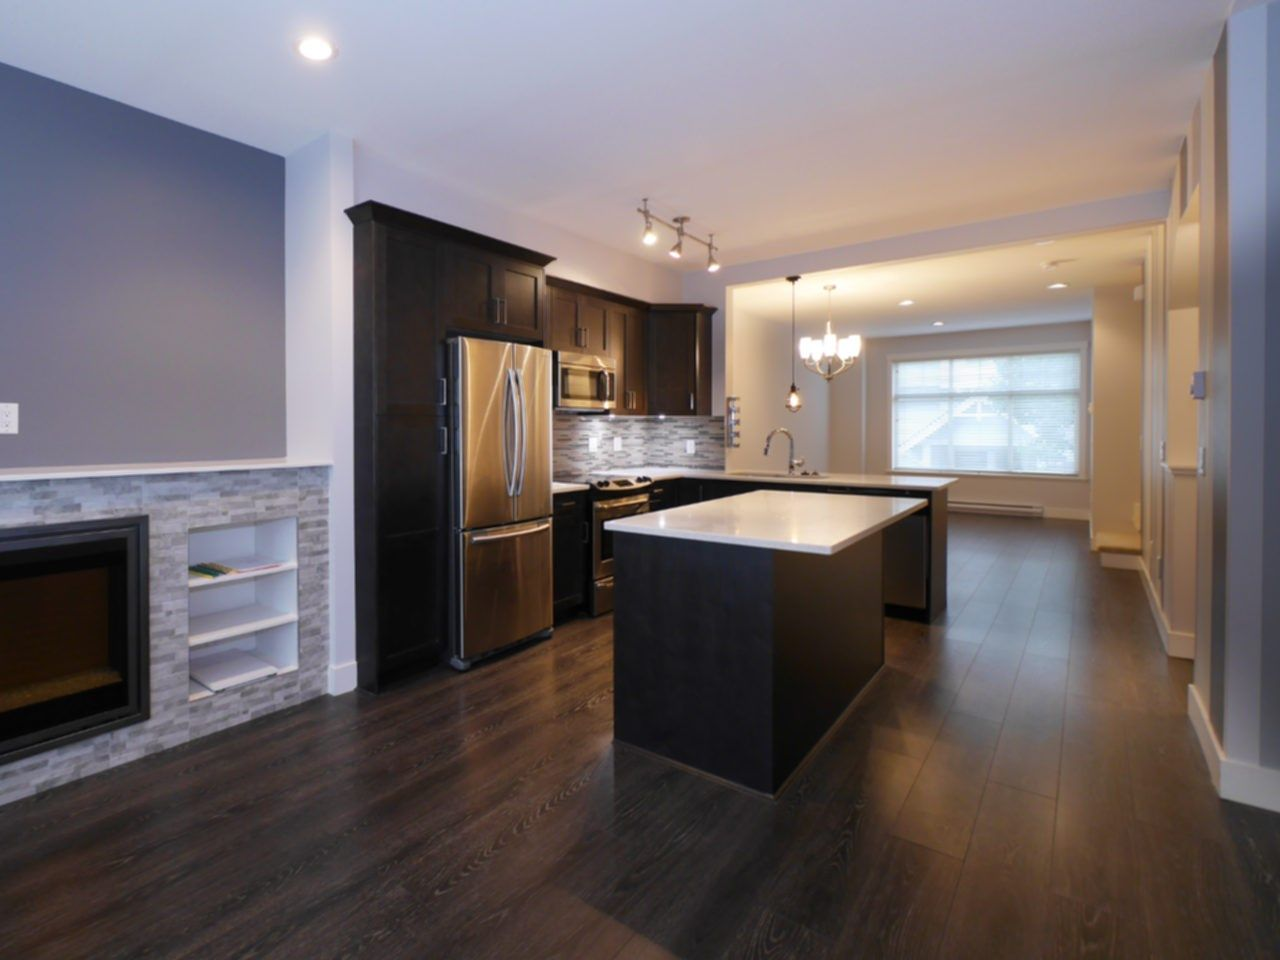 """Photo 7: Photos: 36 19525 73 Avenue in Surrey: Clayton Townhouse for sale in """"Uptown Clayton"""" (Cloverdale)  : MLS®# R2069814"""